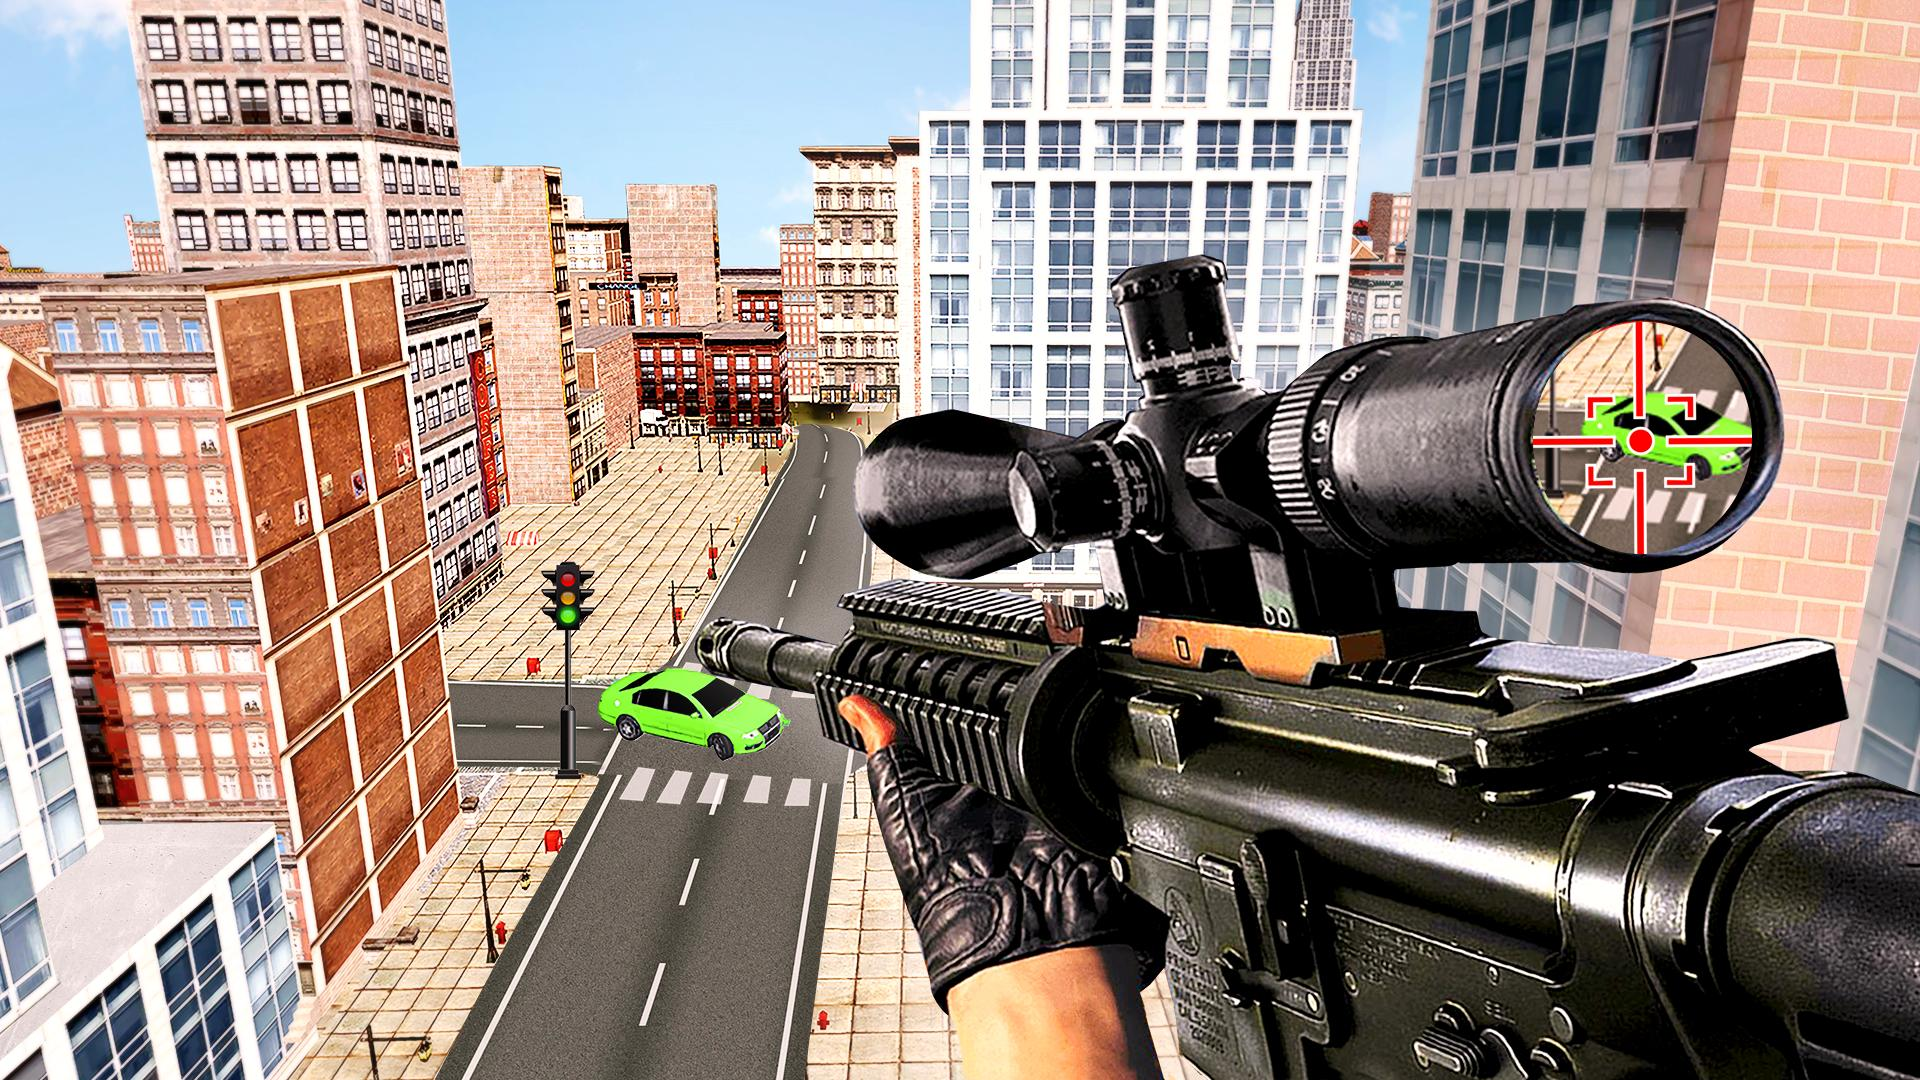 New Sniper 3d Shooting 2019 - Free Sniper Games 1.0 Screenshot 1